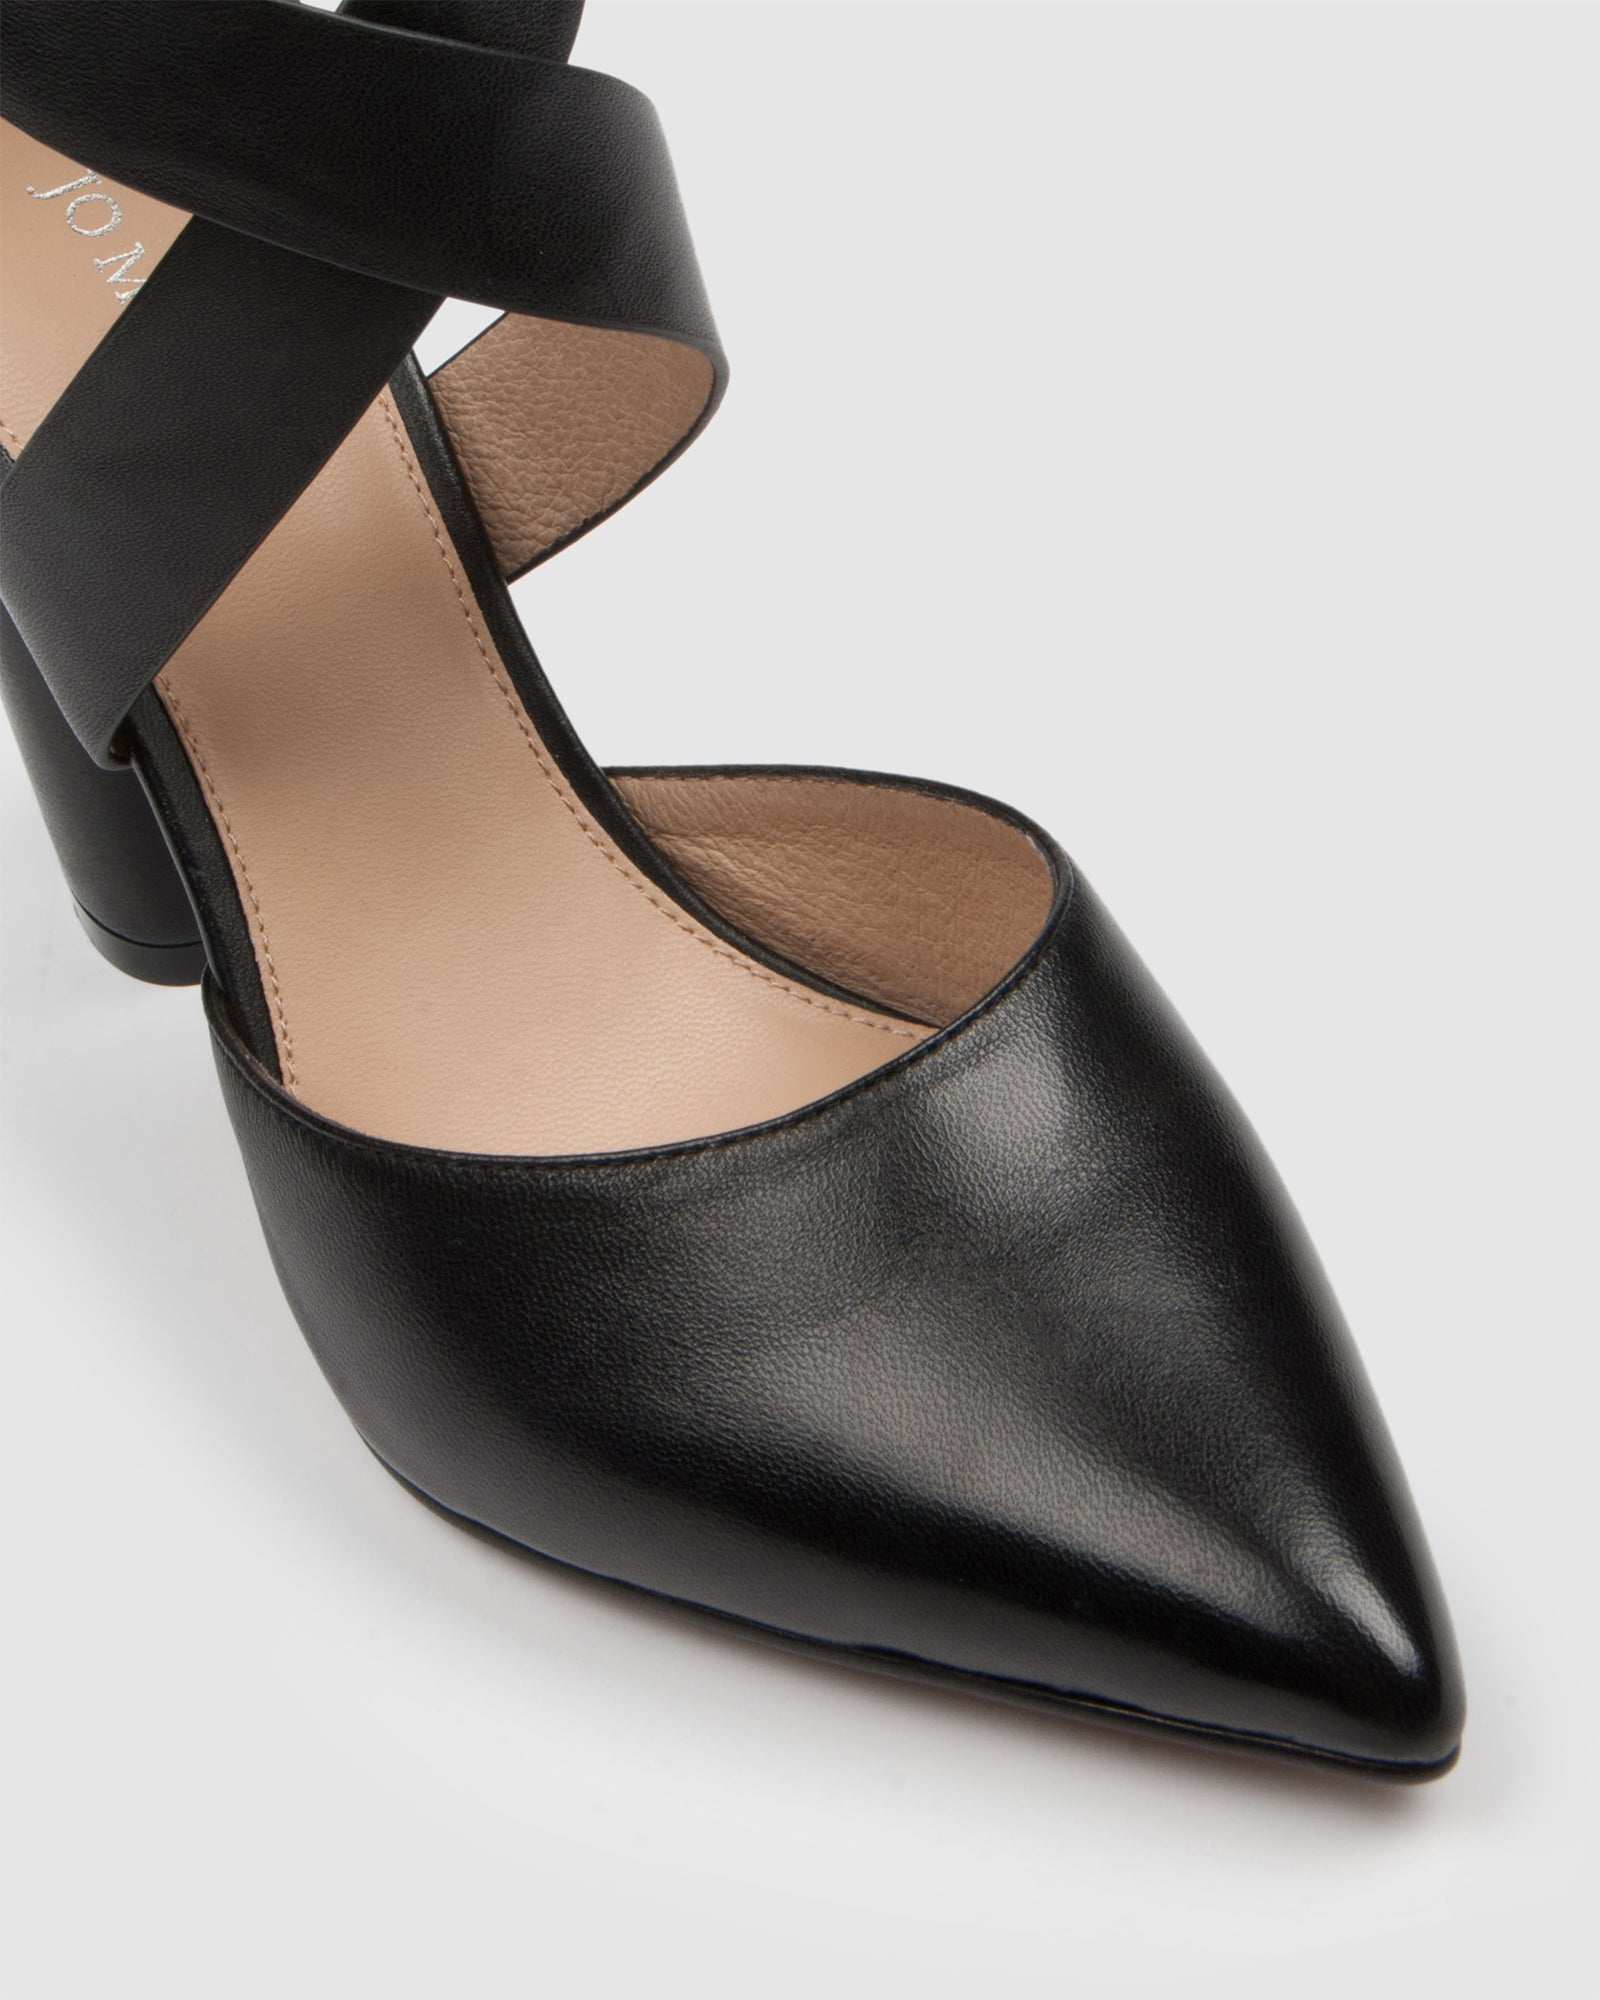 JULES HIGH HEELS BLACK LEATHER